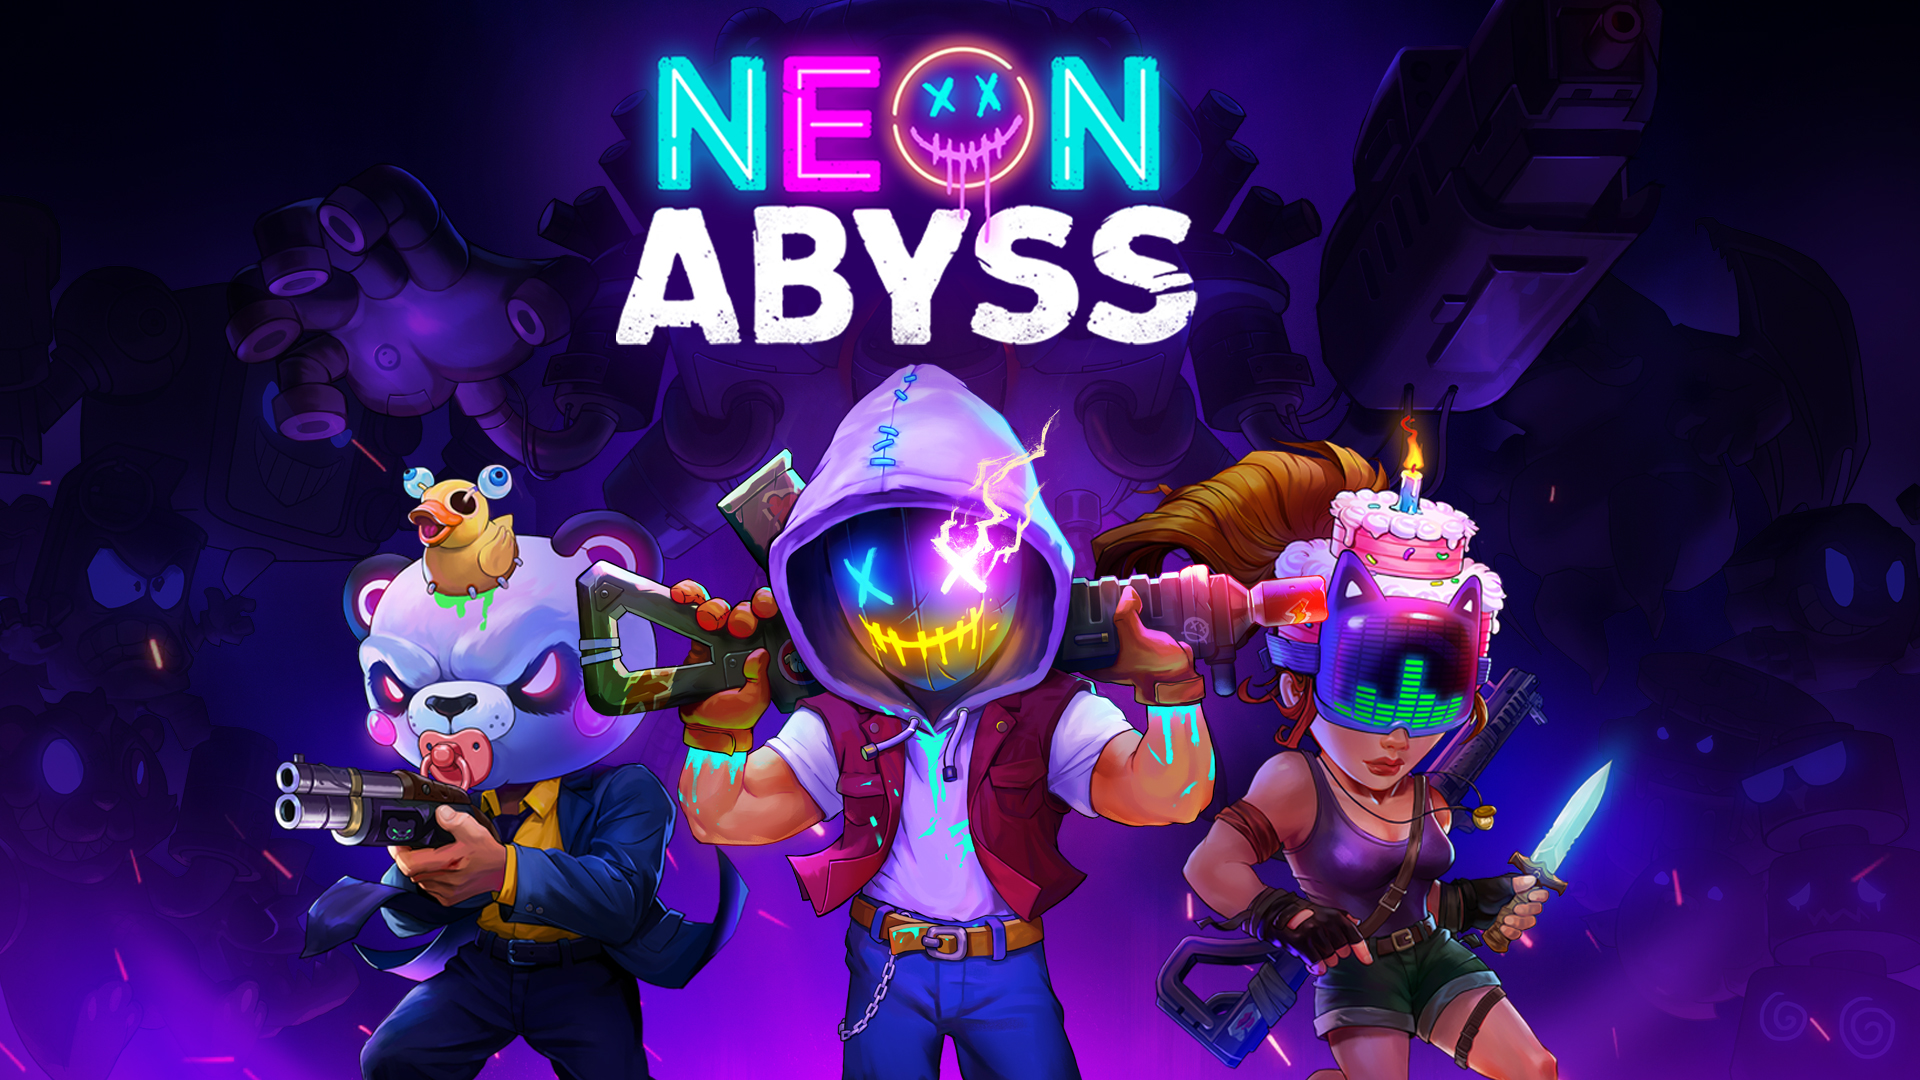 Neon Abyss Is Now Available!